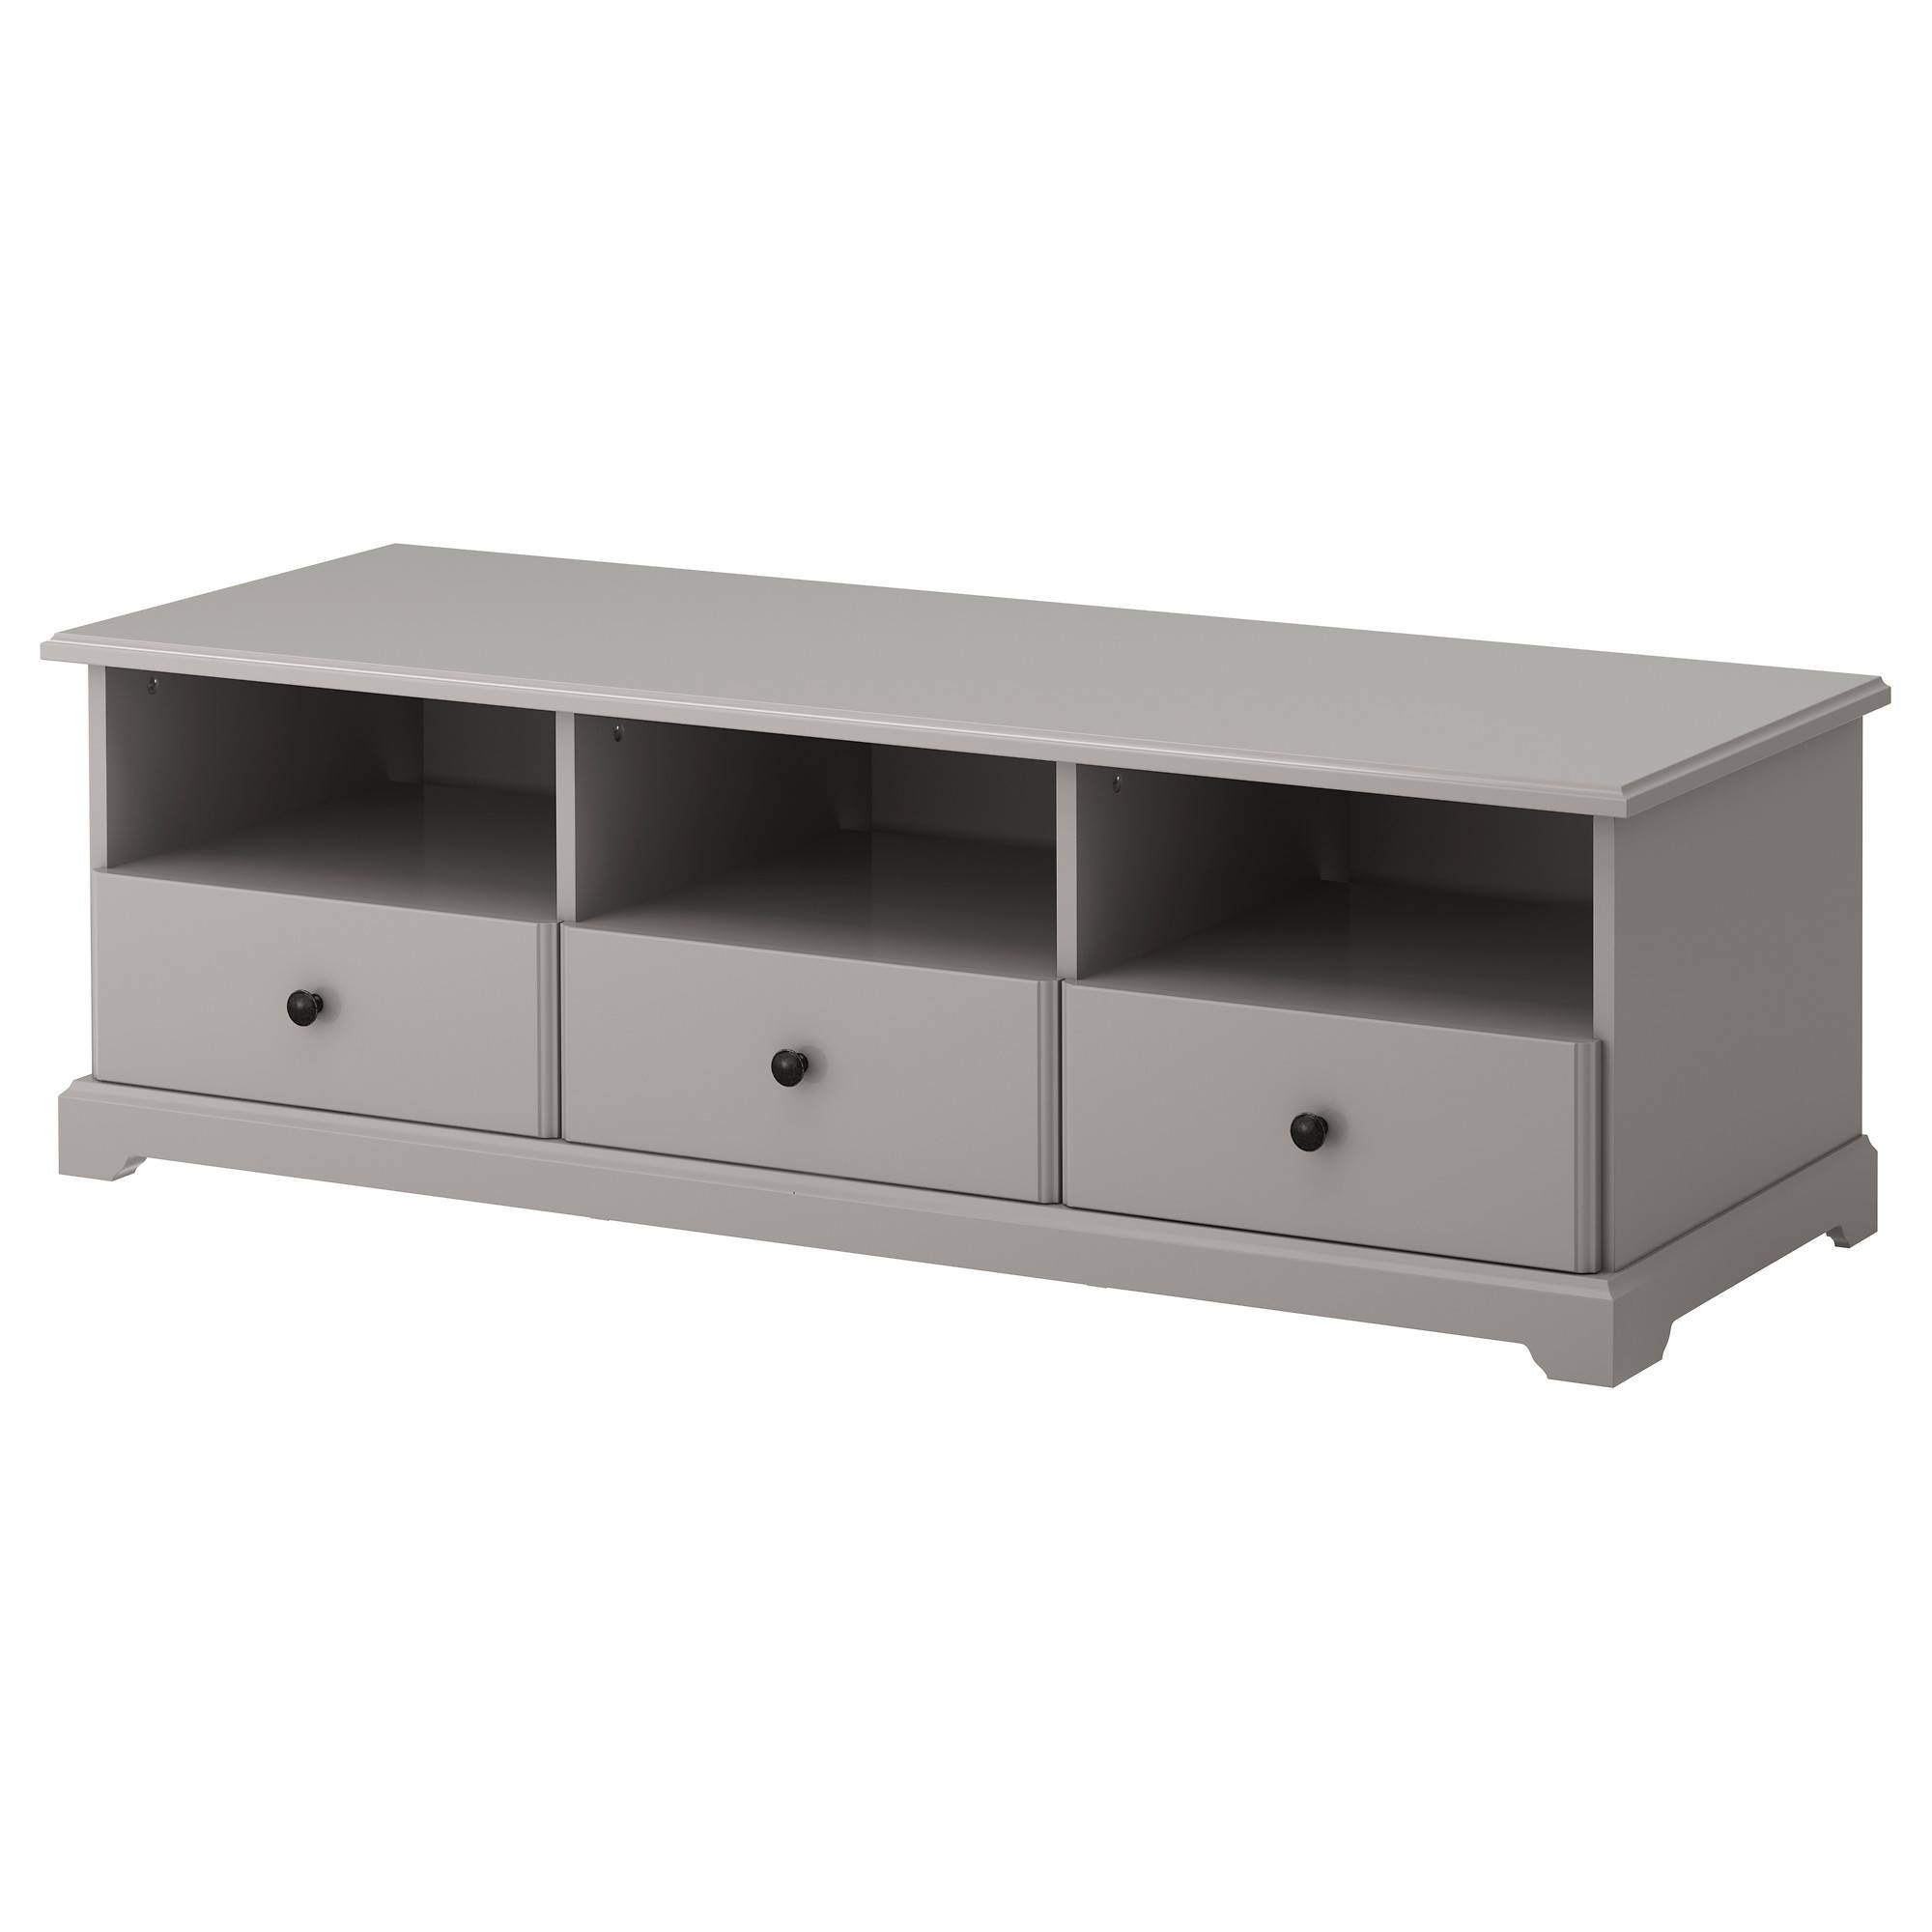 Small White Tv Stand Trendy Bedroom Small Tv Stand For Bedroom  # Meuble Cache Tv Ikea